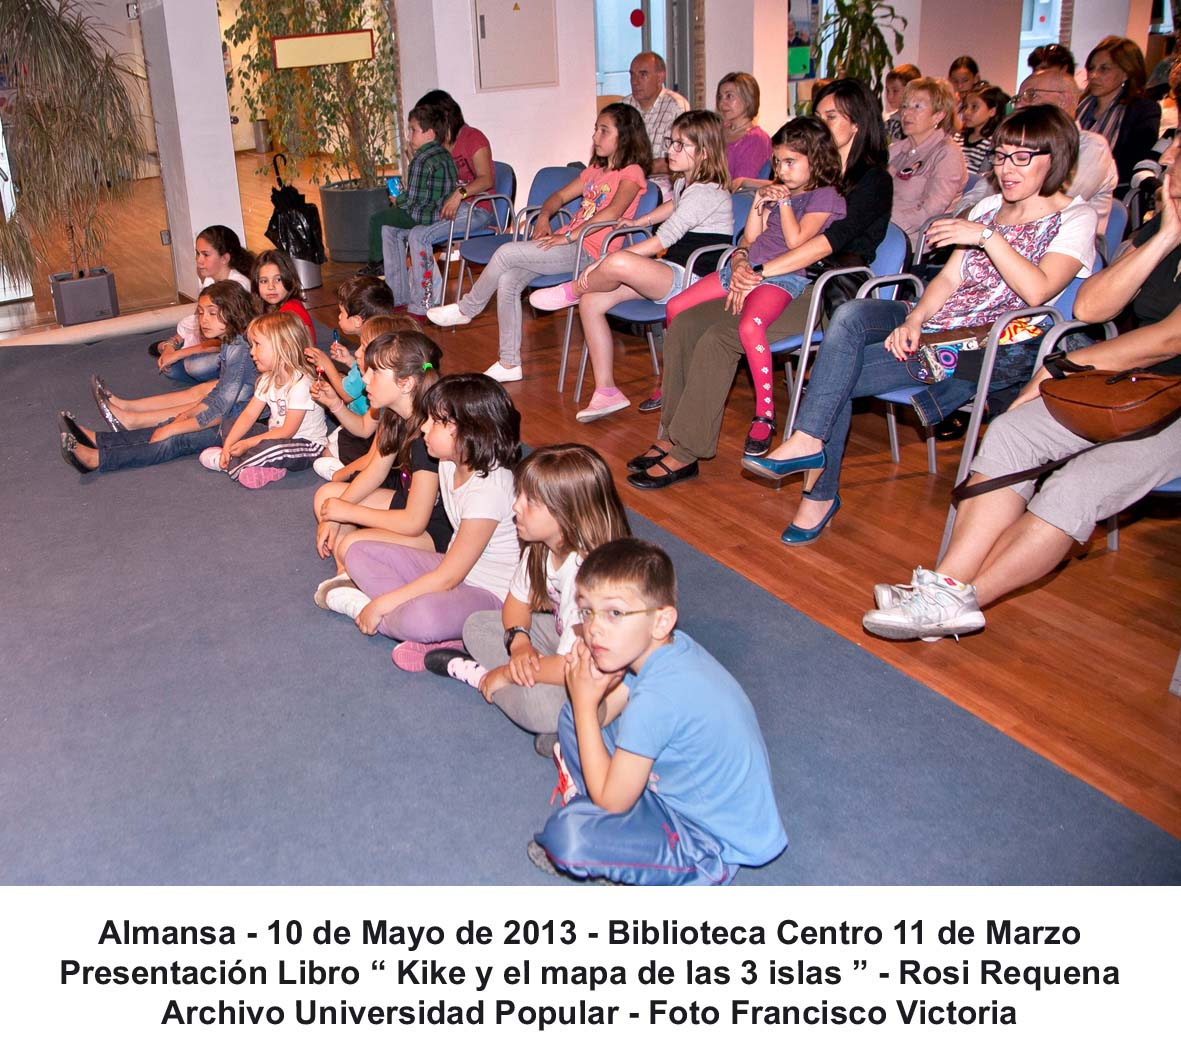 130510 ROSI REQUENA 02